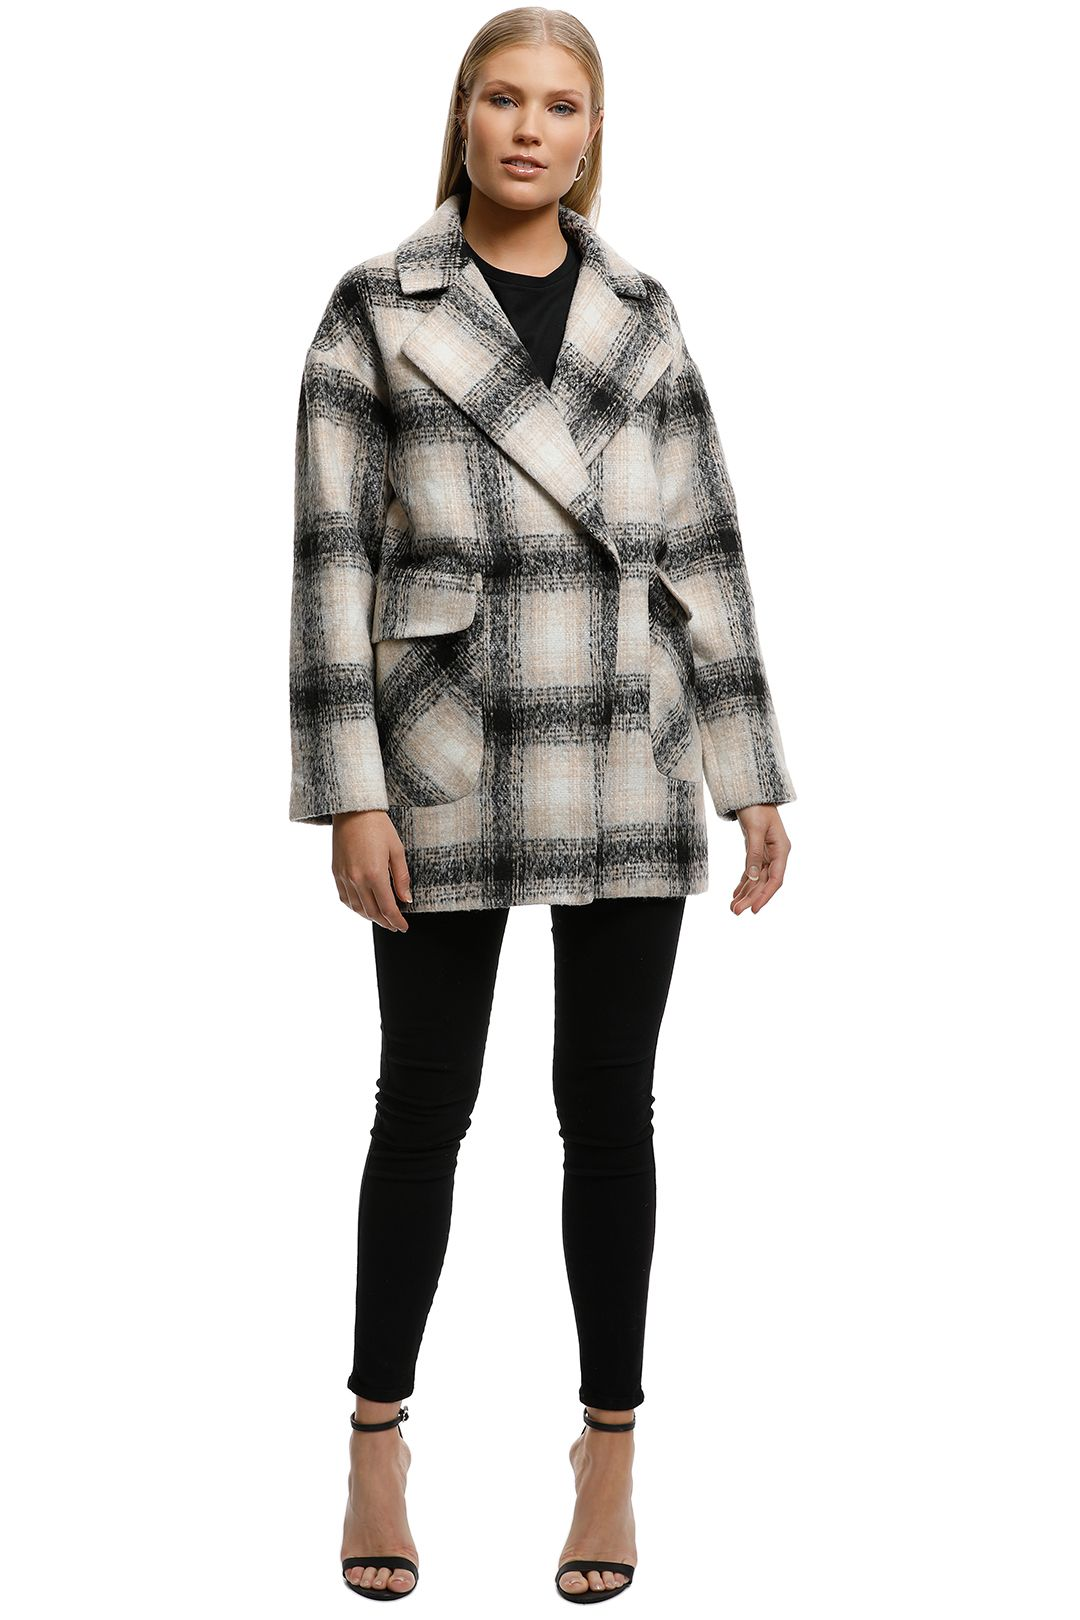 Wish - Wire Coat - Check - Front